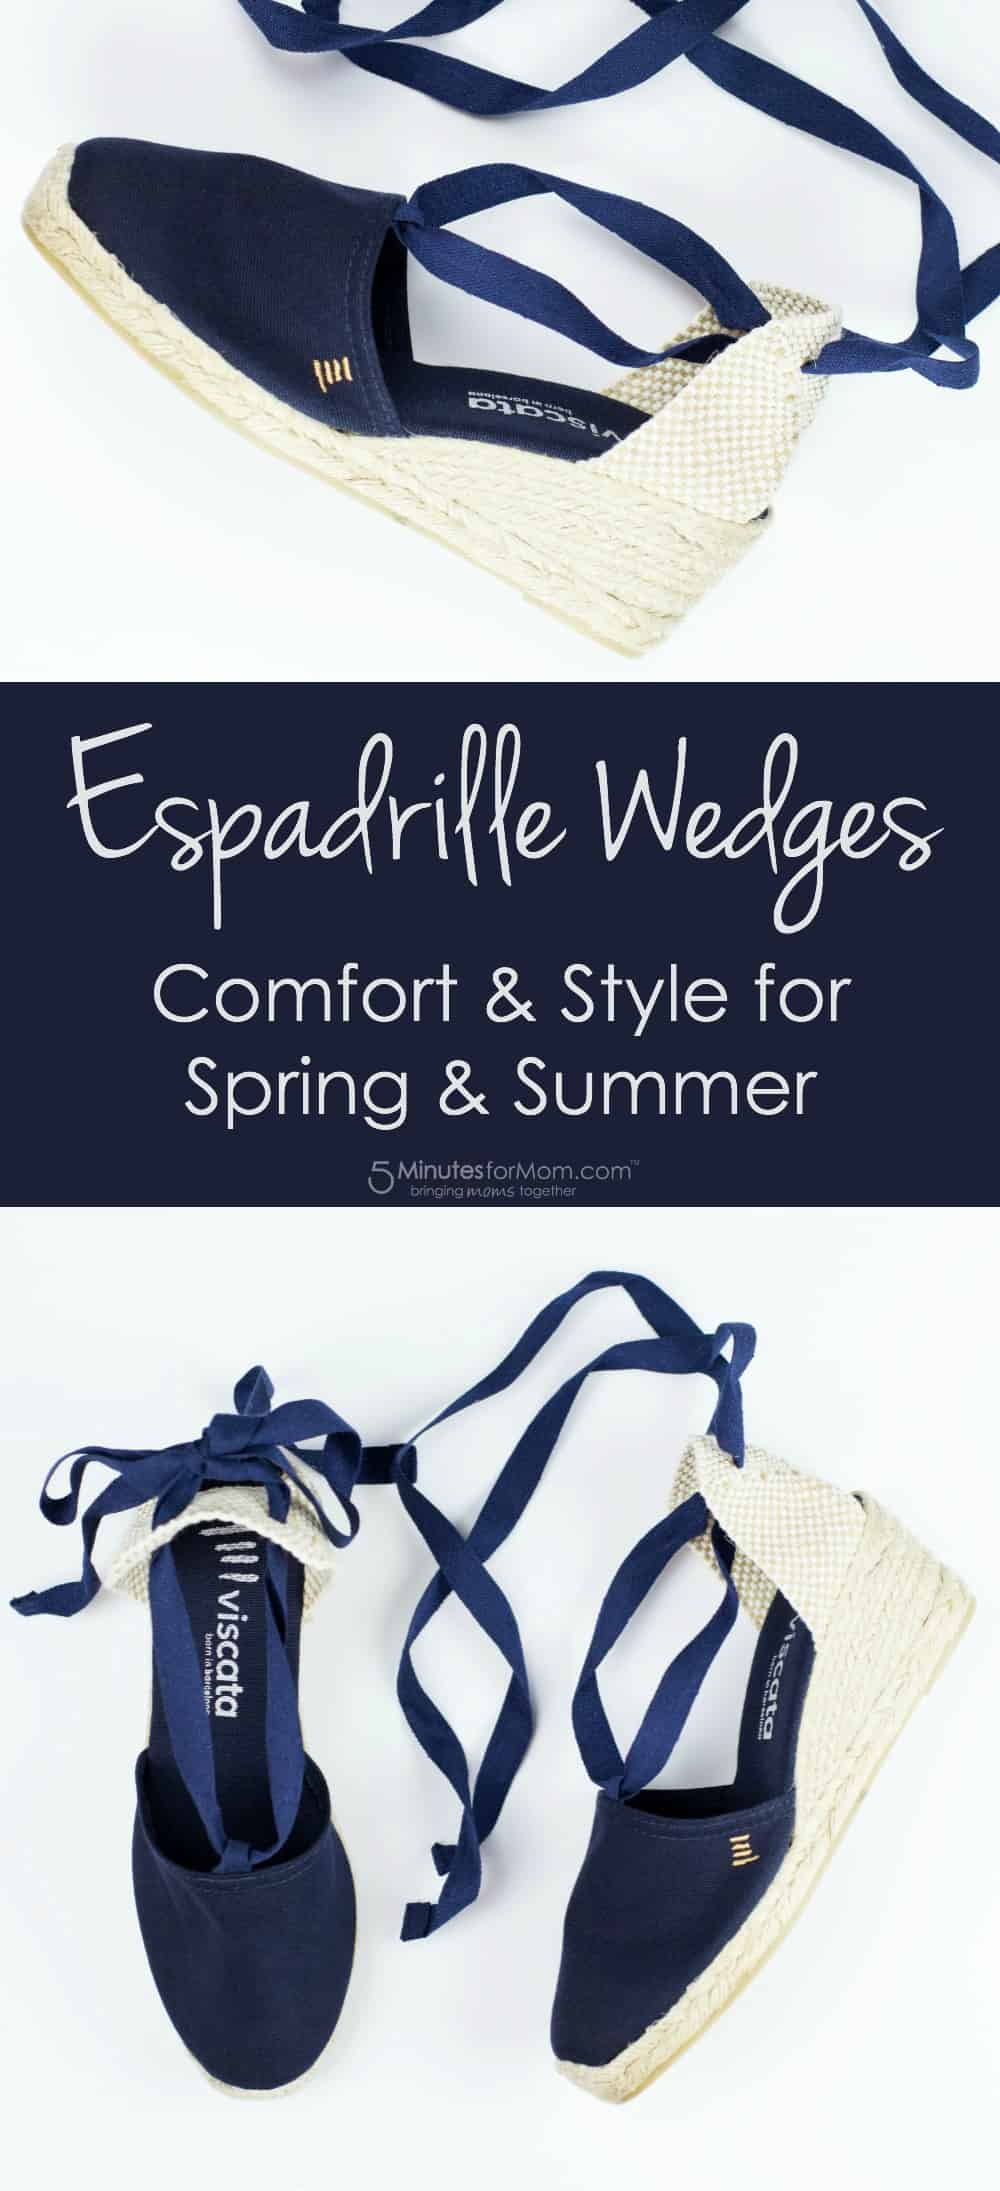 Espadrille Wedges - Comfort and Style